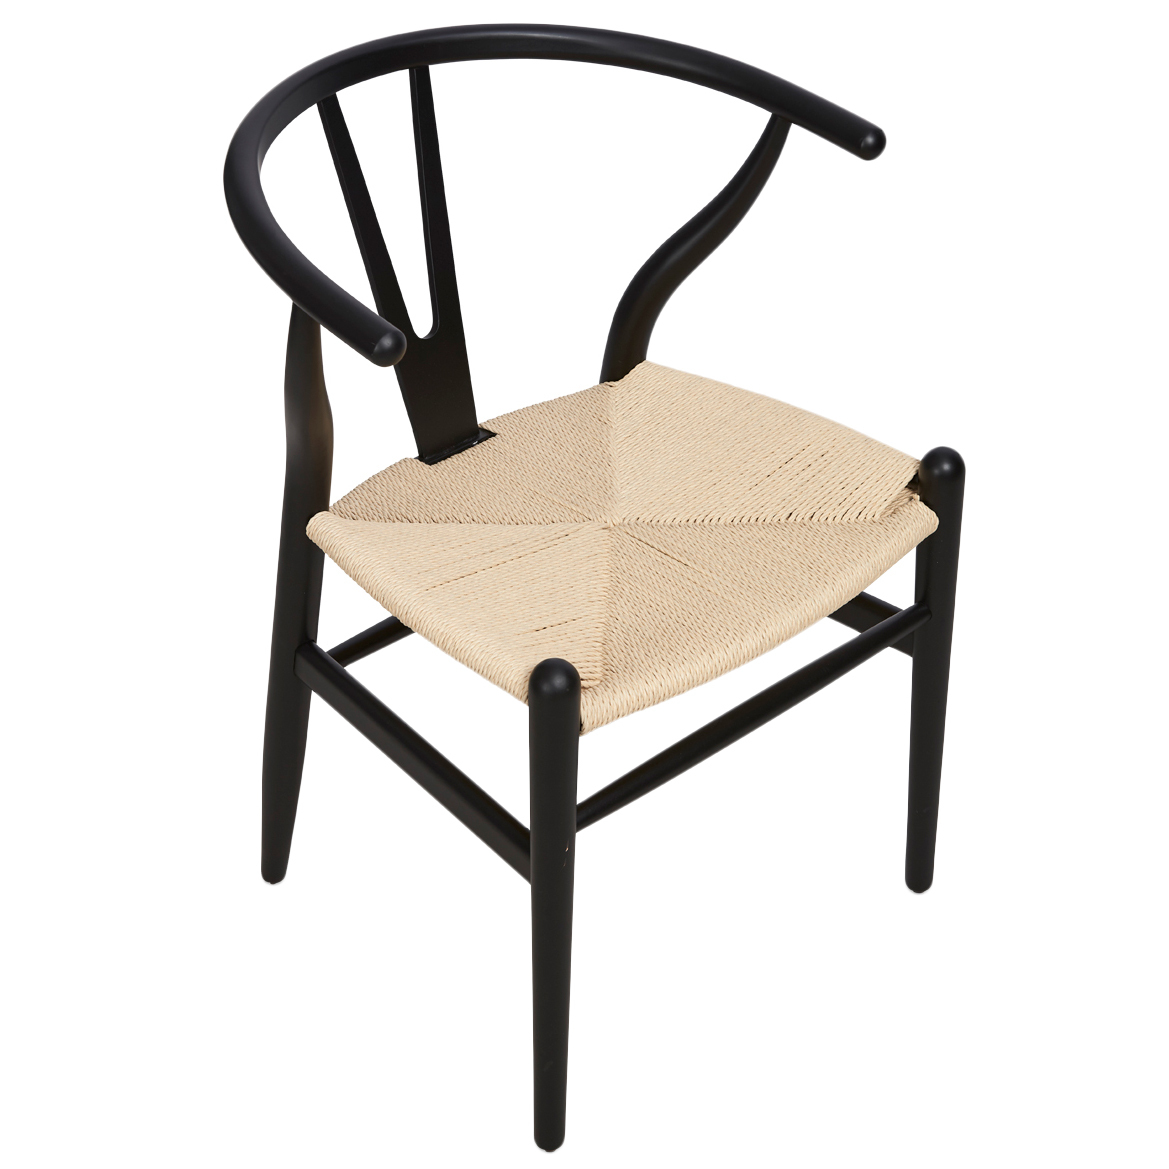 Wishbone Dining Chair Details About New Beech Wood Wishbone Chair Lifestyle Traders Dining Chairs